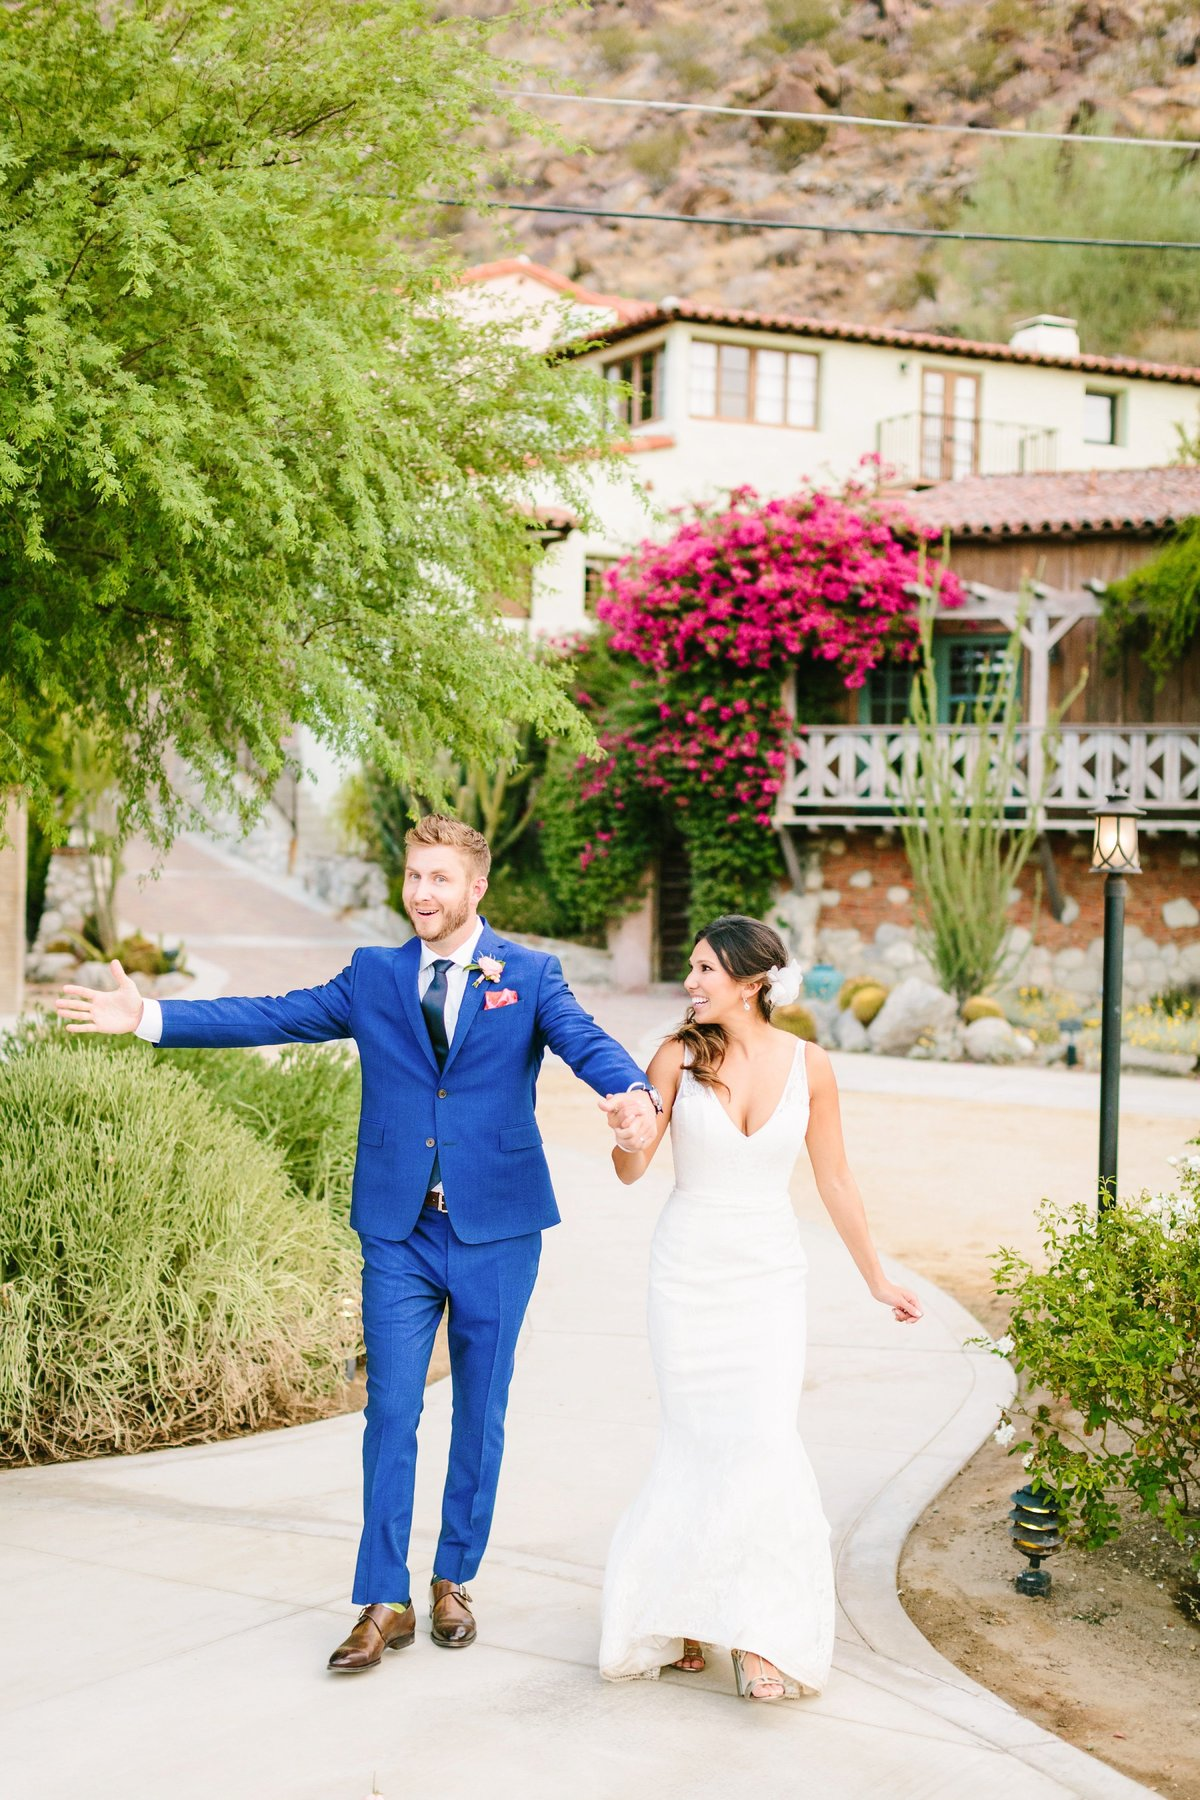 Best California Wedding Photographer-Jodee Debes Photography-352